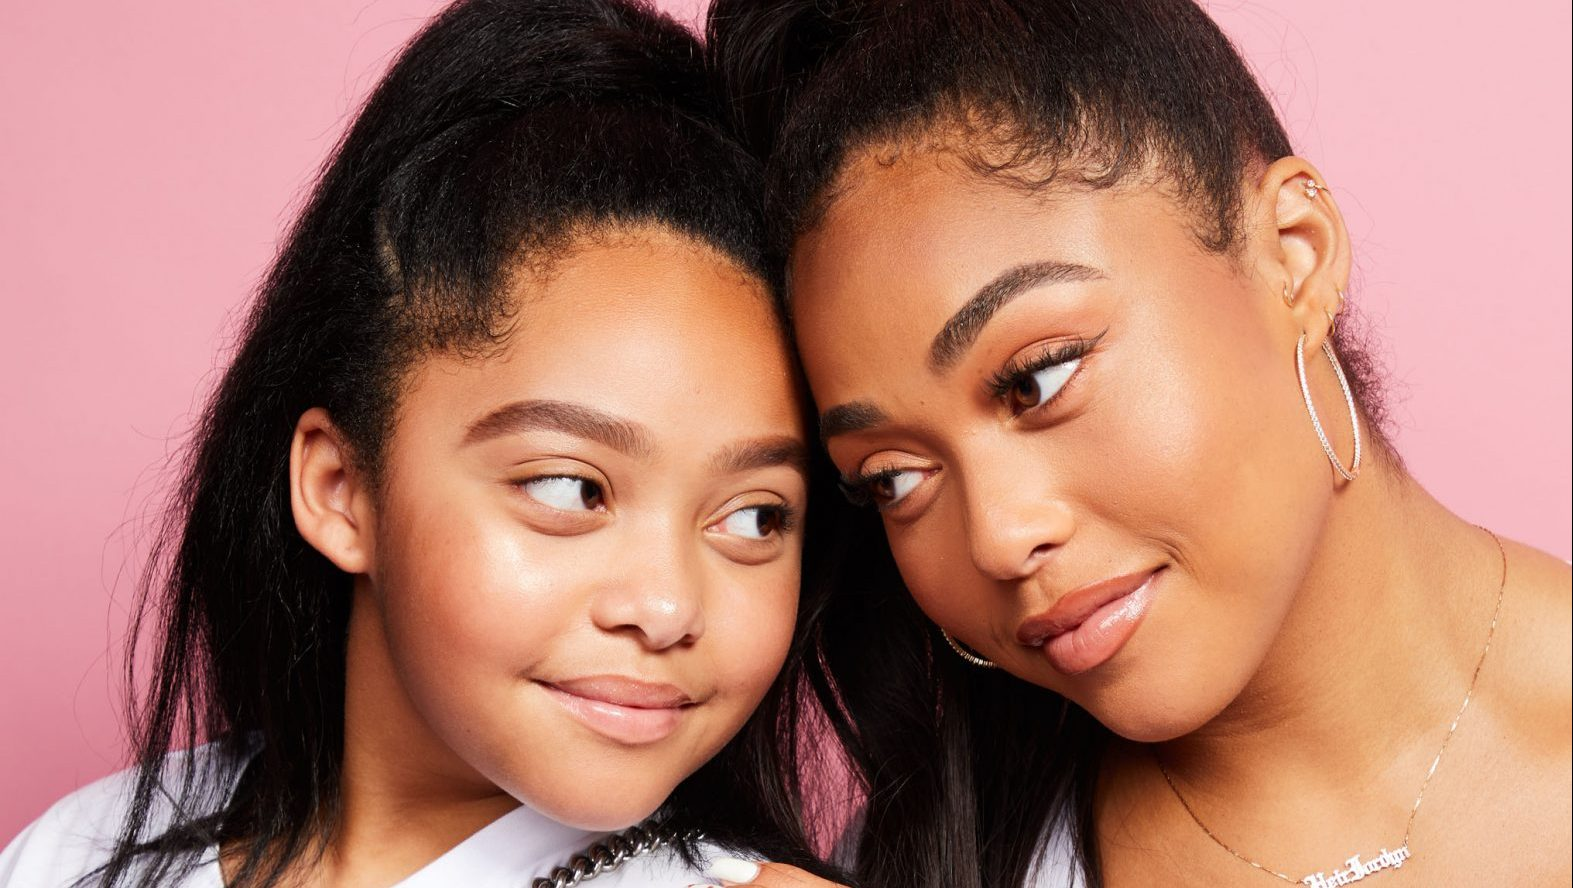 Jordyn Woods Has A Q&A With Her Sister, Jodie - See The Video